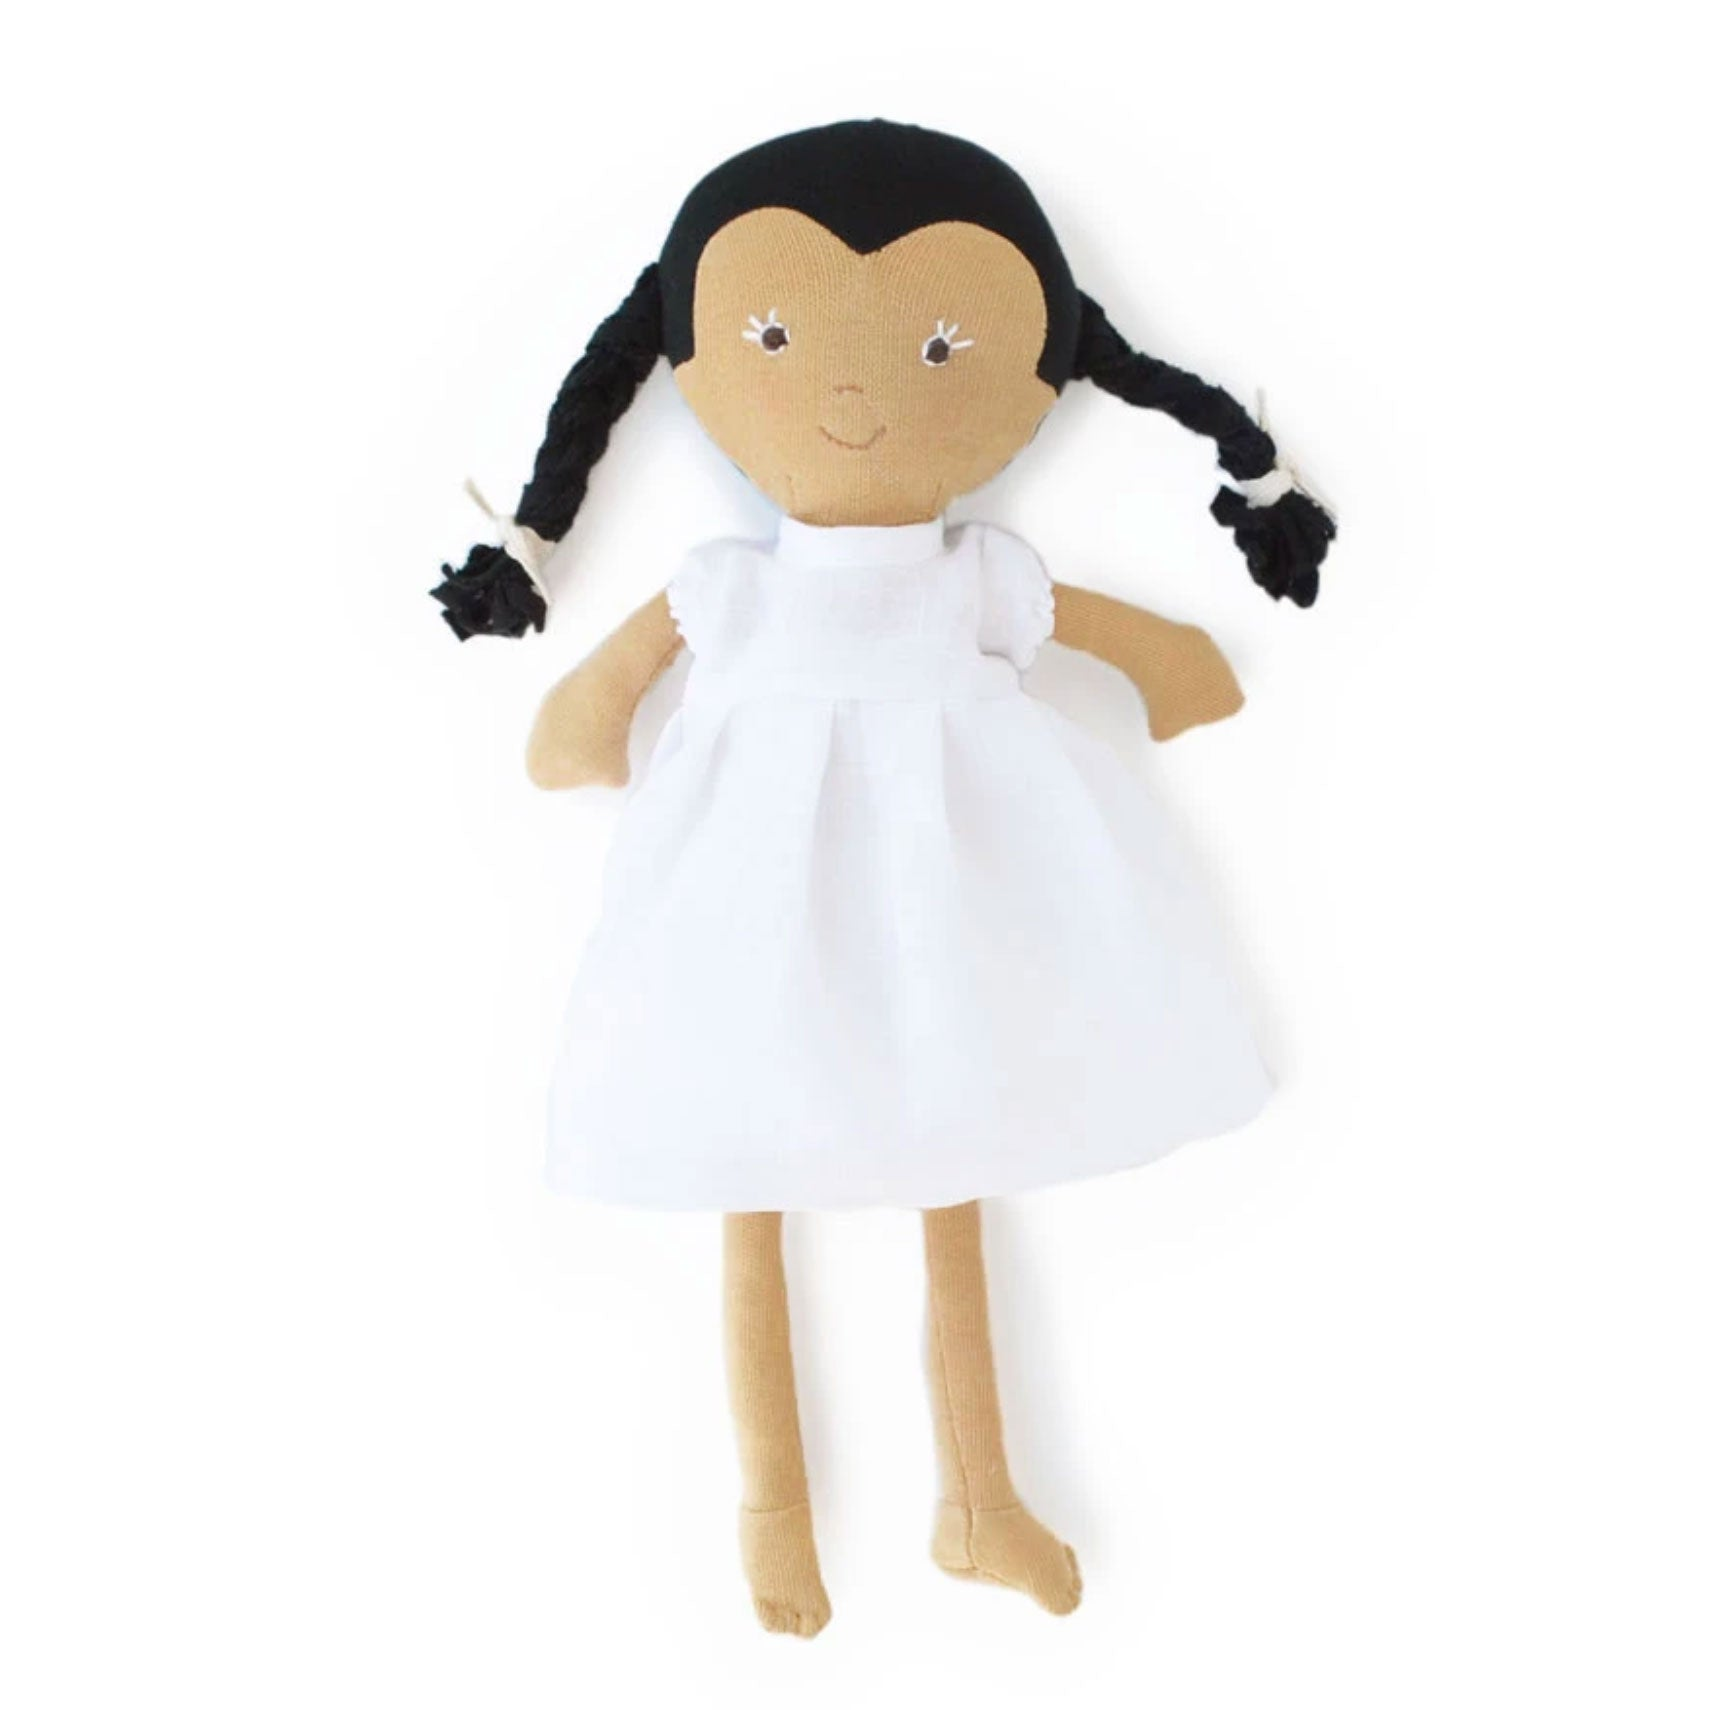 Hazel Village Celia soft doll at Bonjour Baby Baskets, luxury baby gifts